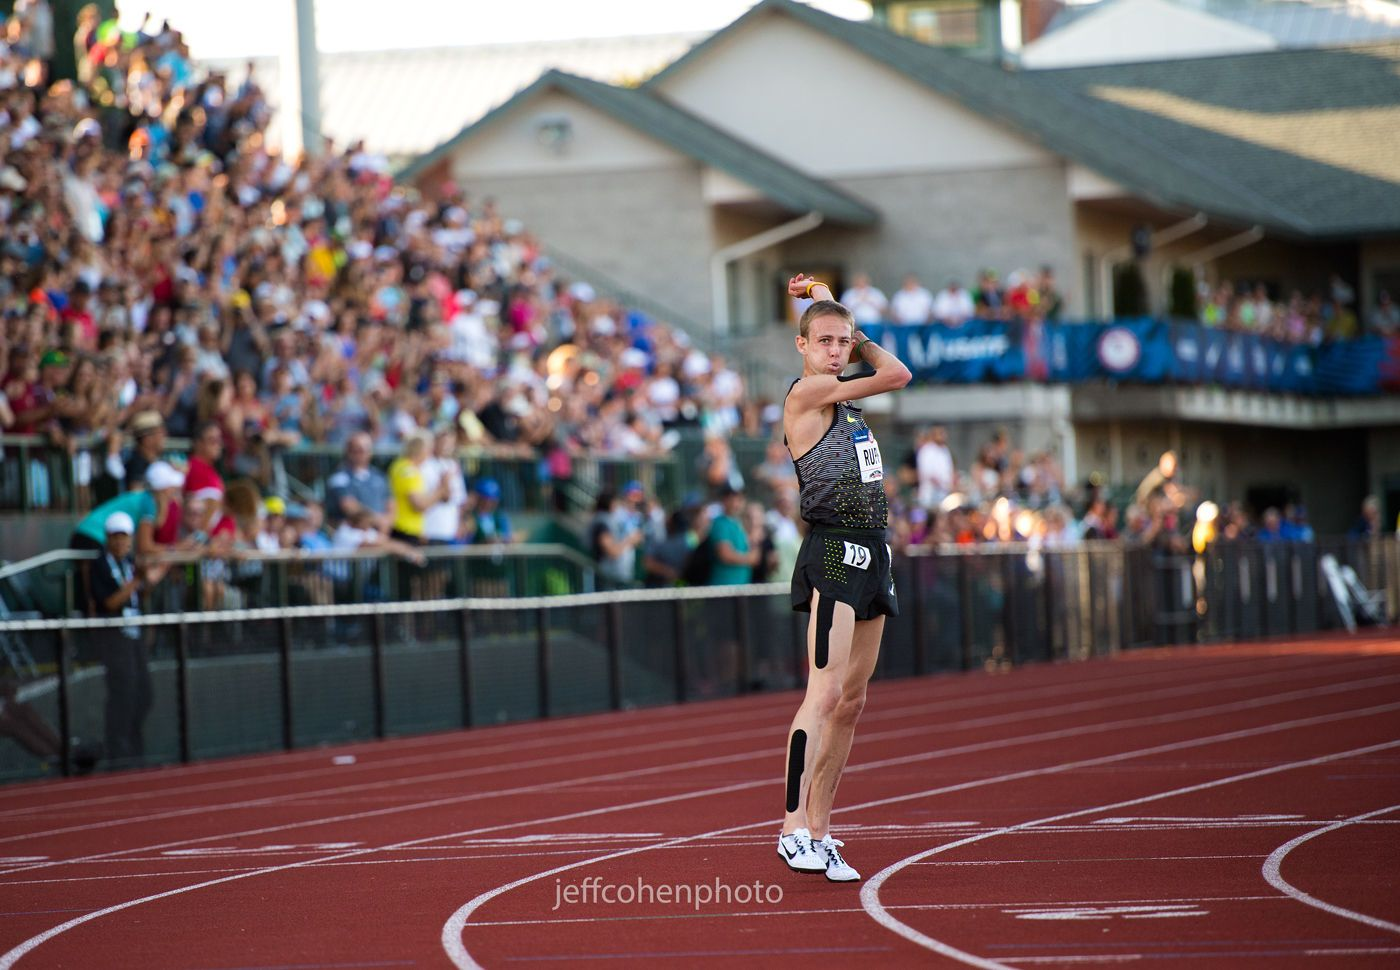 1r2016_oly_trials_day_1_g_rupp_10k_jeff_cohen_photo_3052_web.jpg